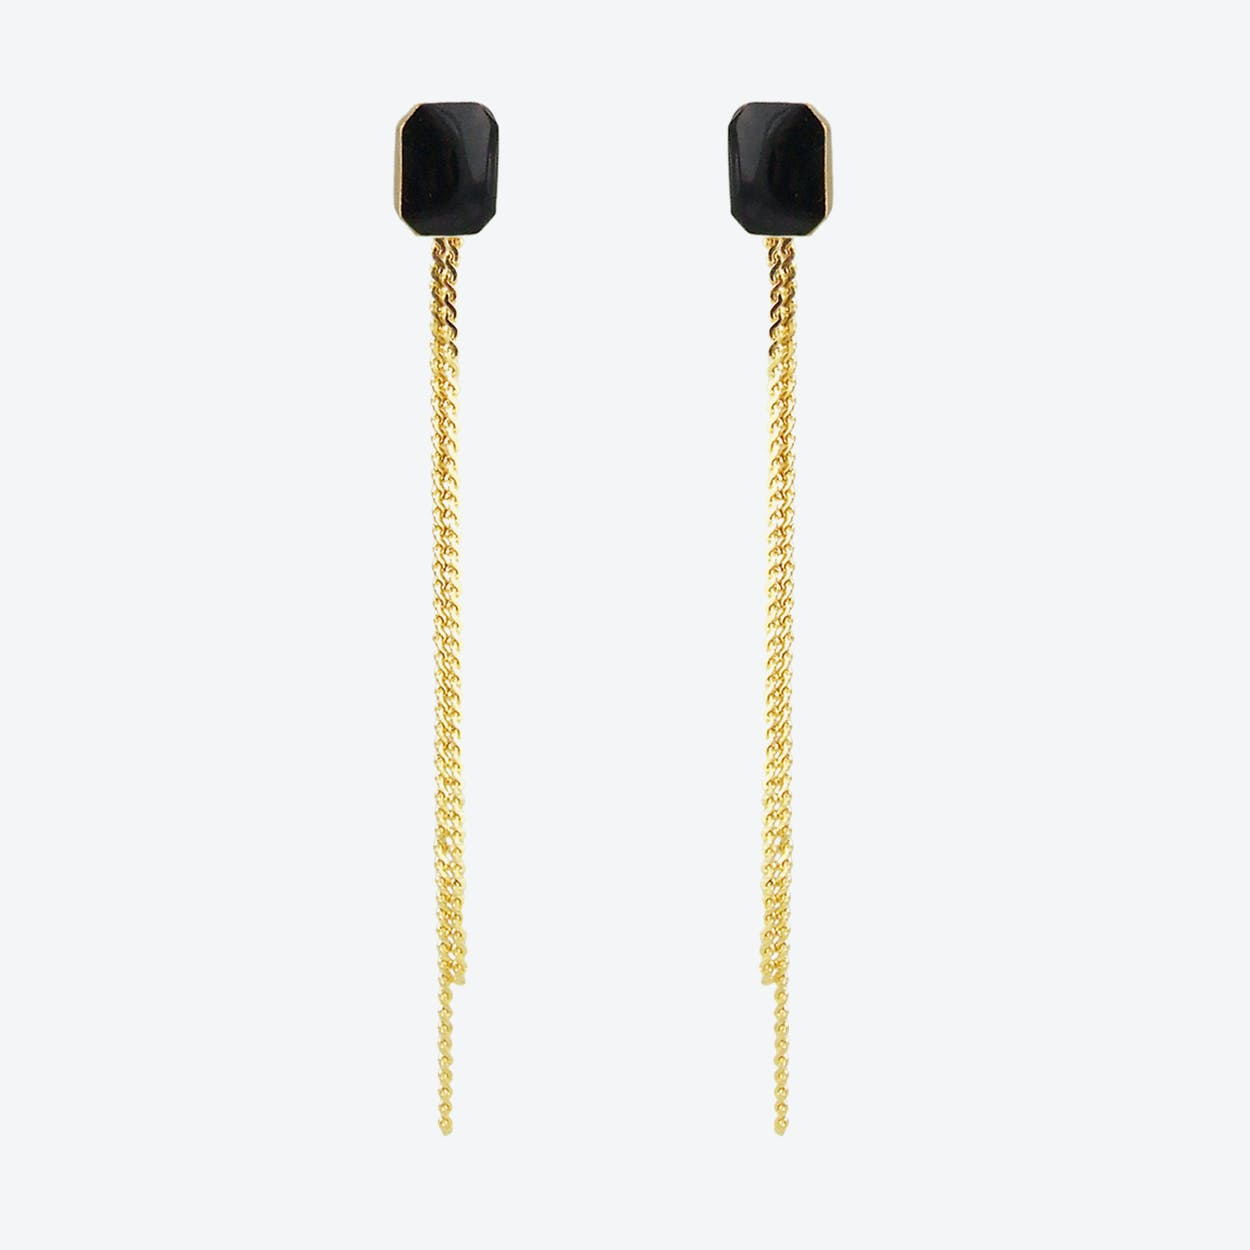 Gold Plated Octagon Stud and Chain Earrings in Black